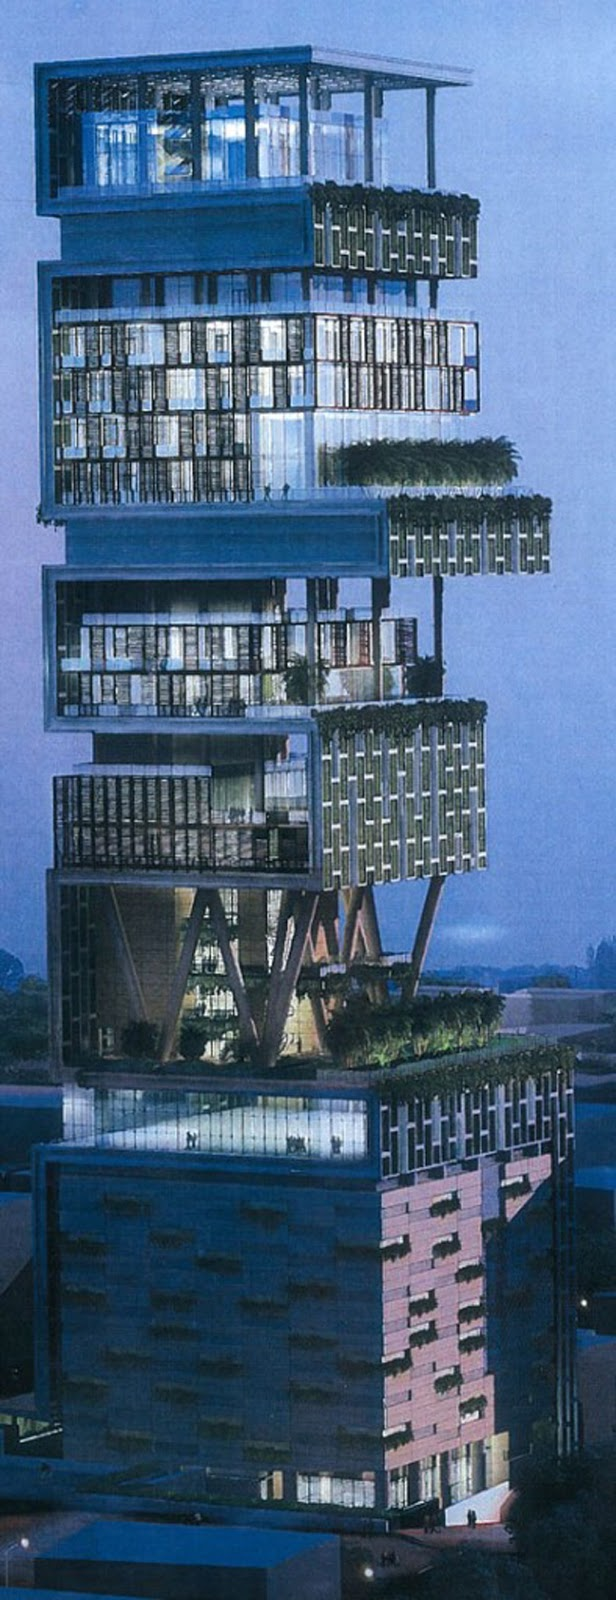 The Most Expensive House In The World One Billion Dollar